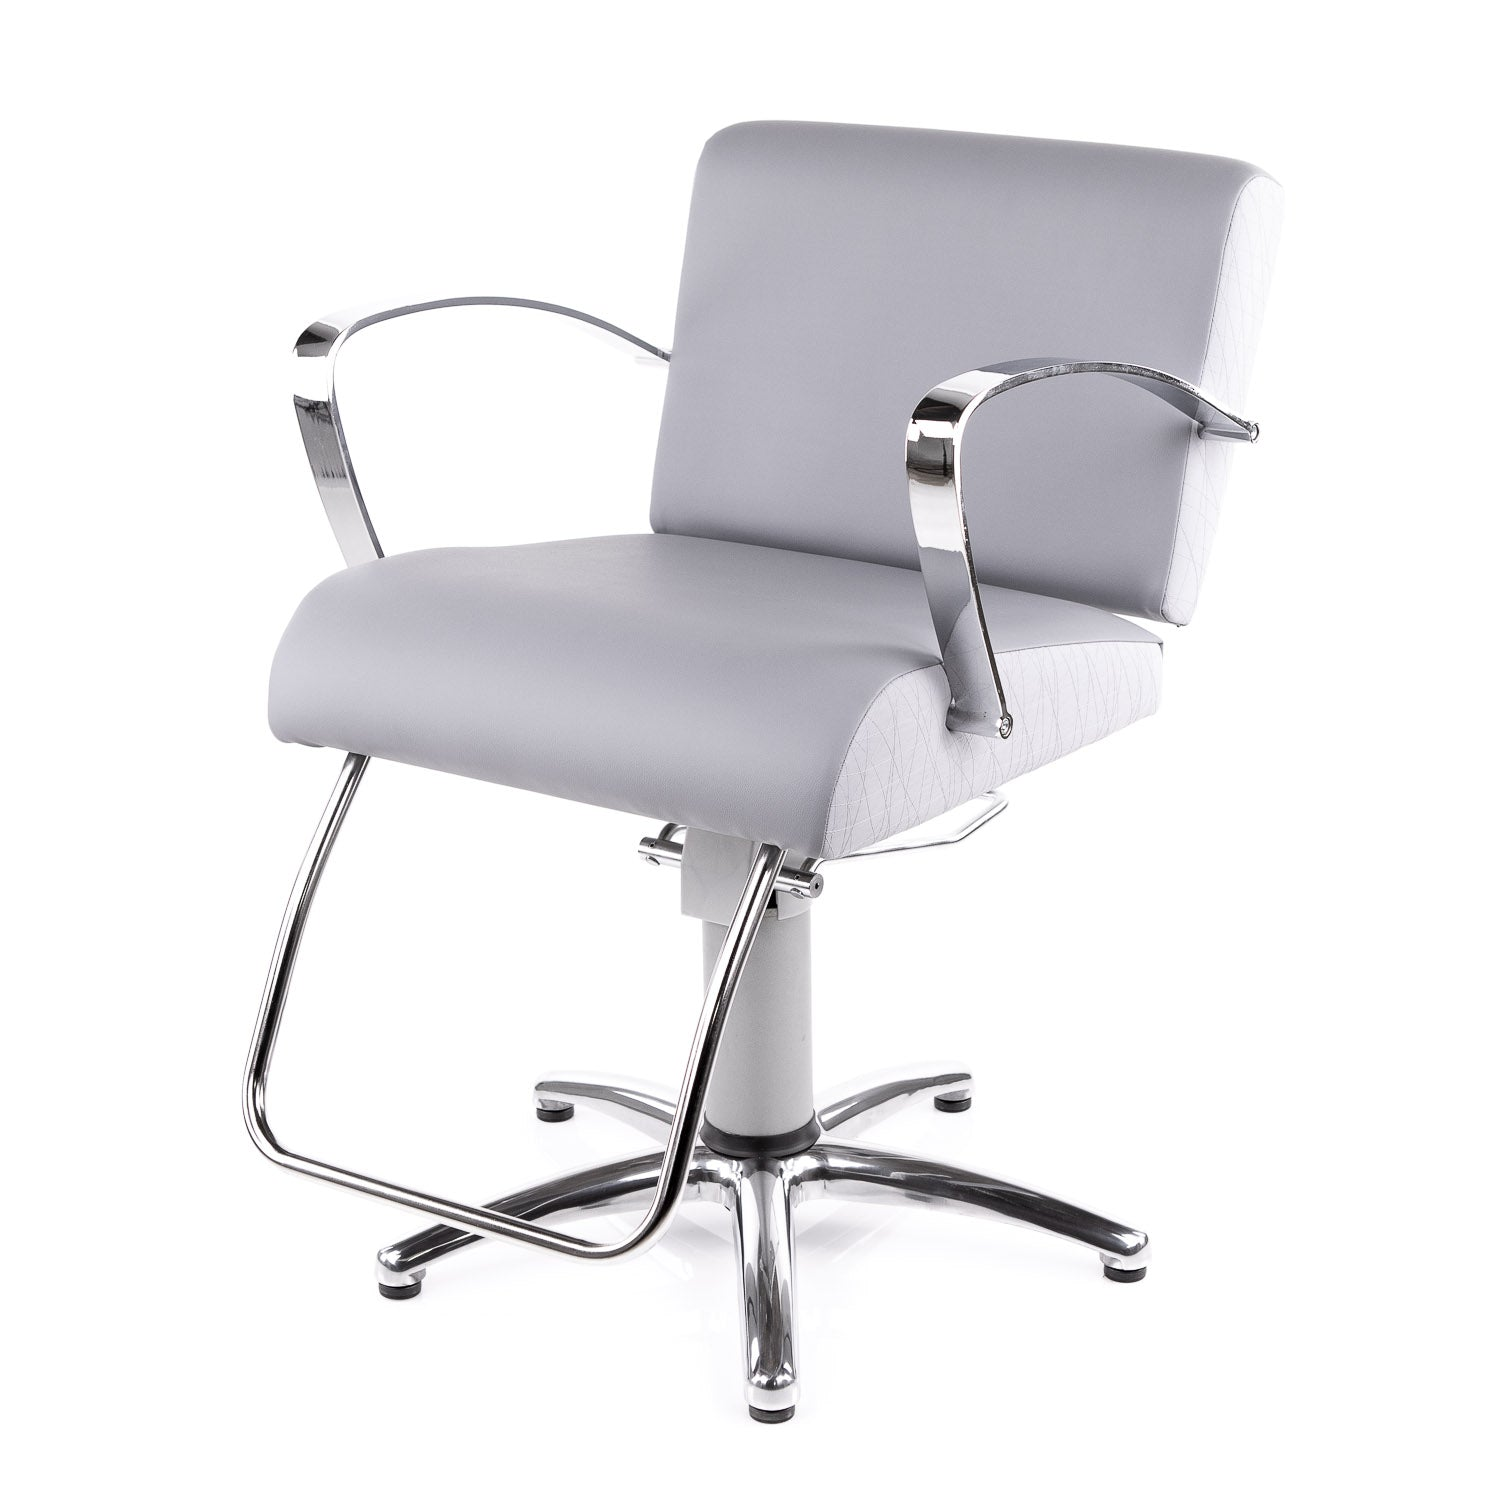 Sorrento Styling Chair - Collins